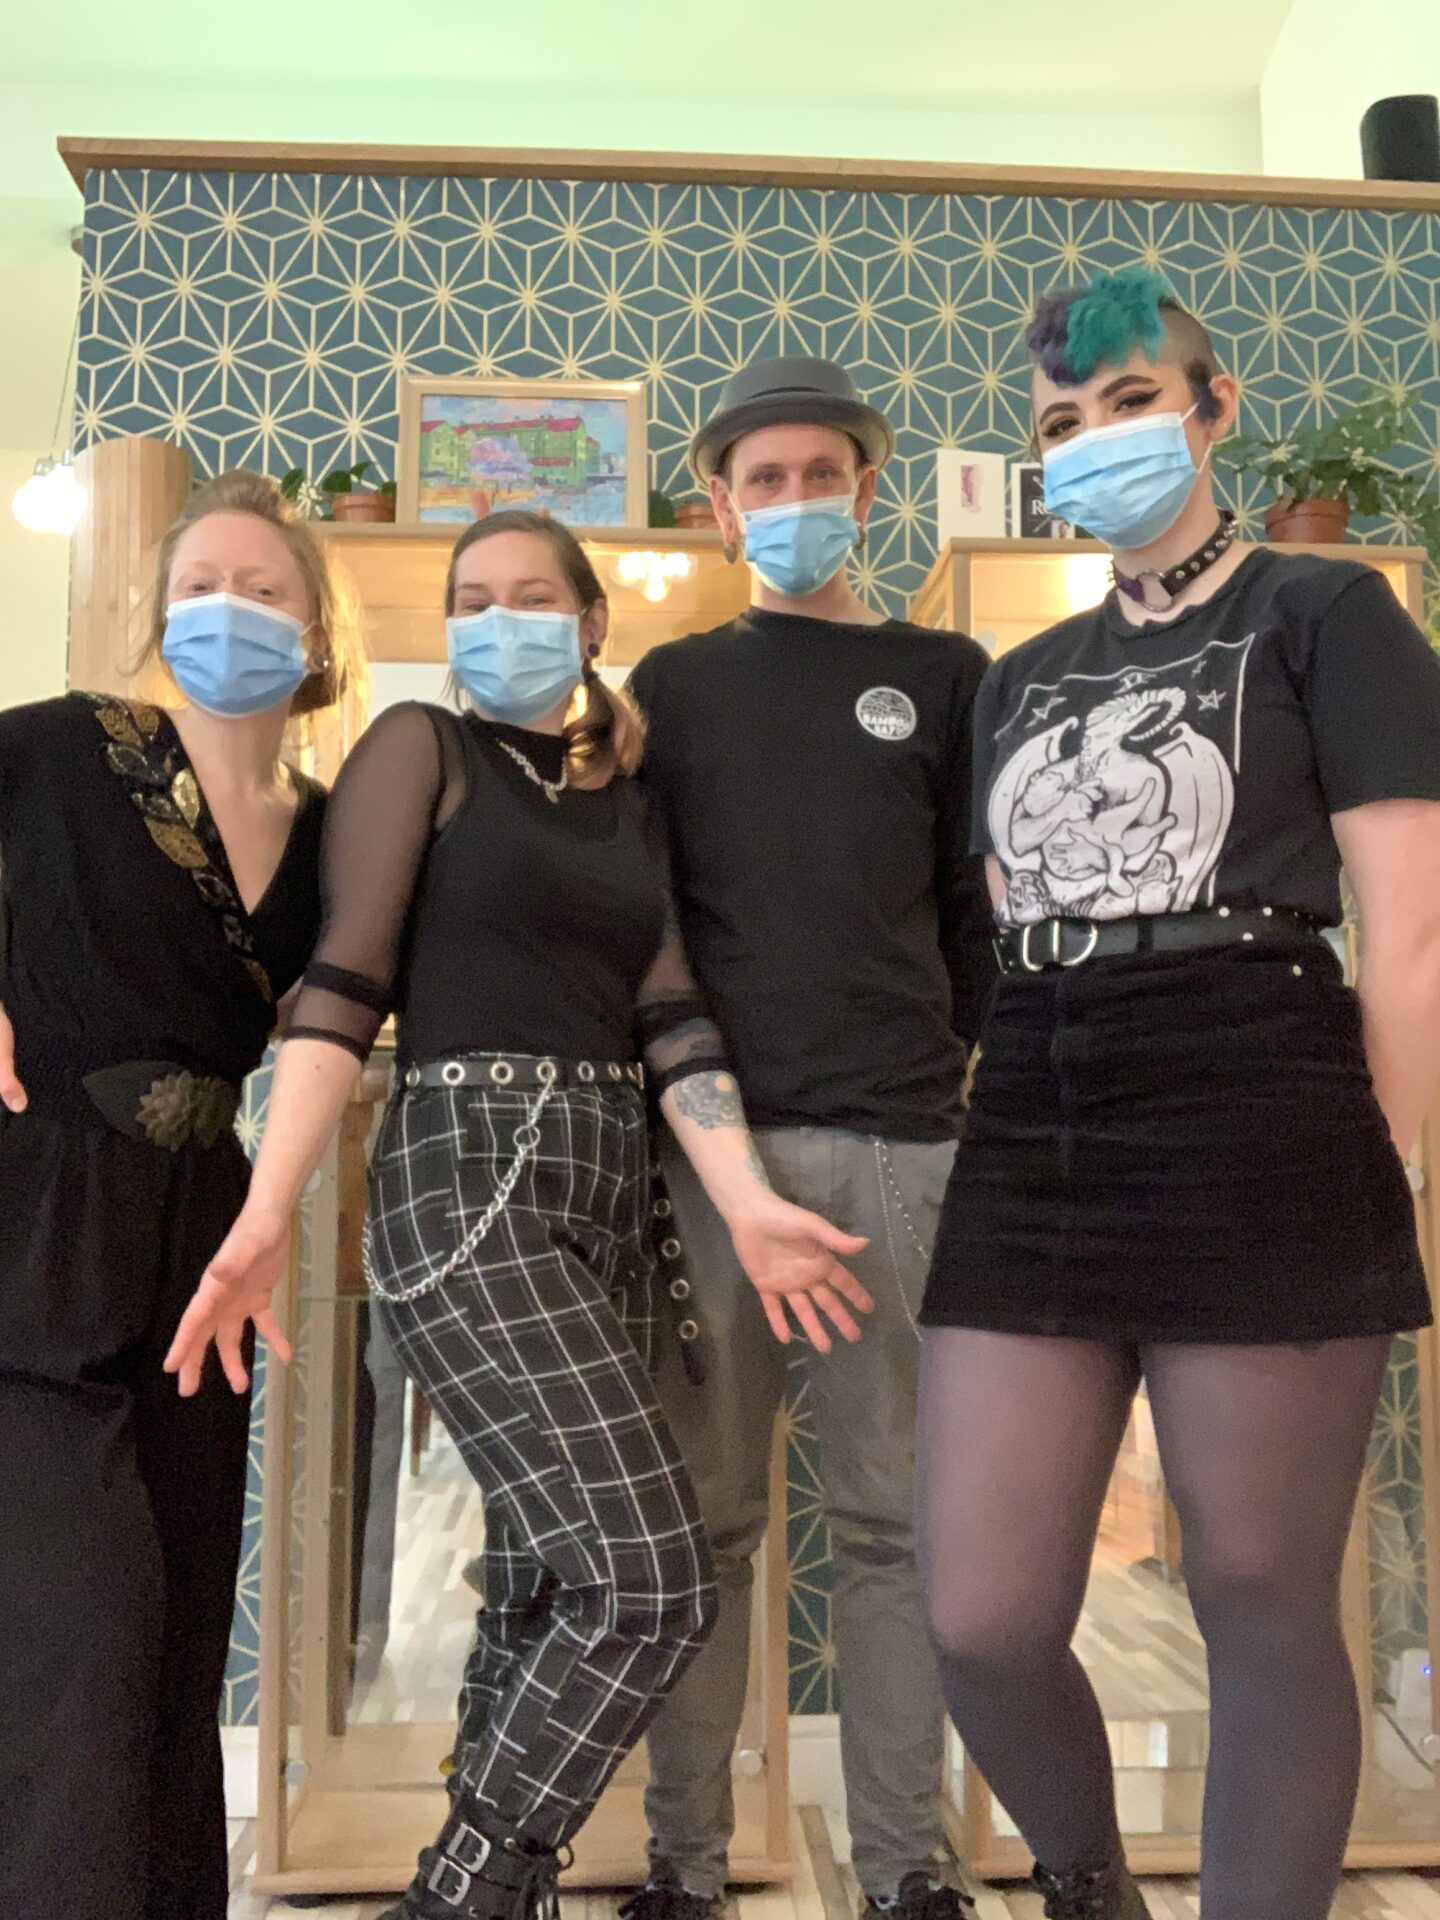 In this photo, all the workers at Rogue Piercing are stood next to each other and posing for the photo.